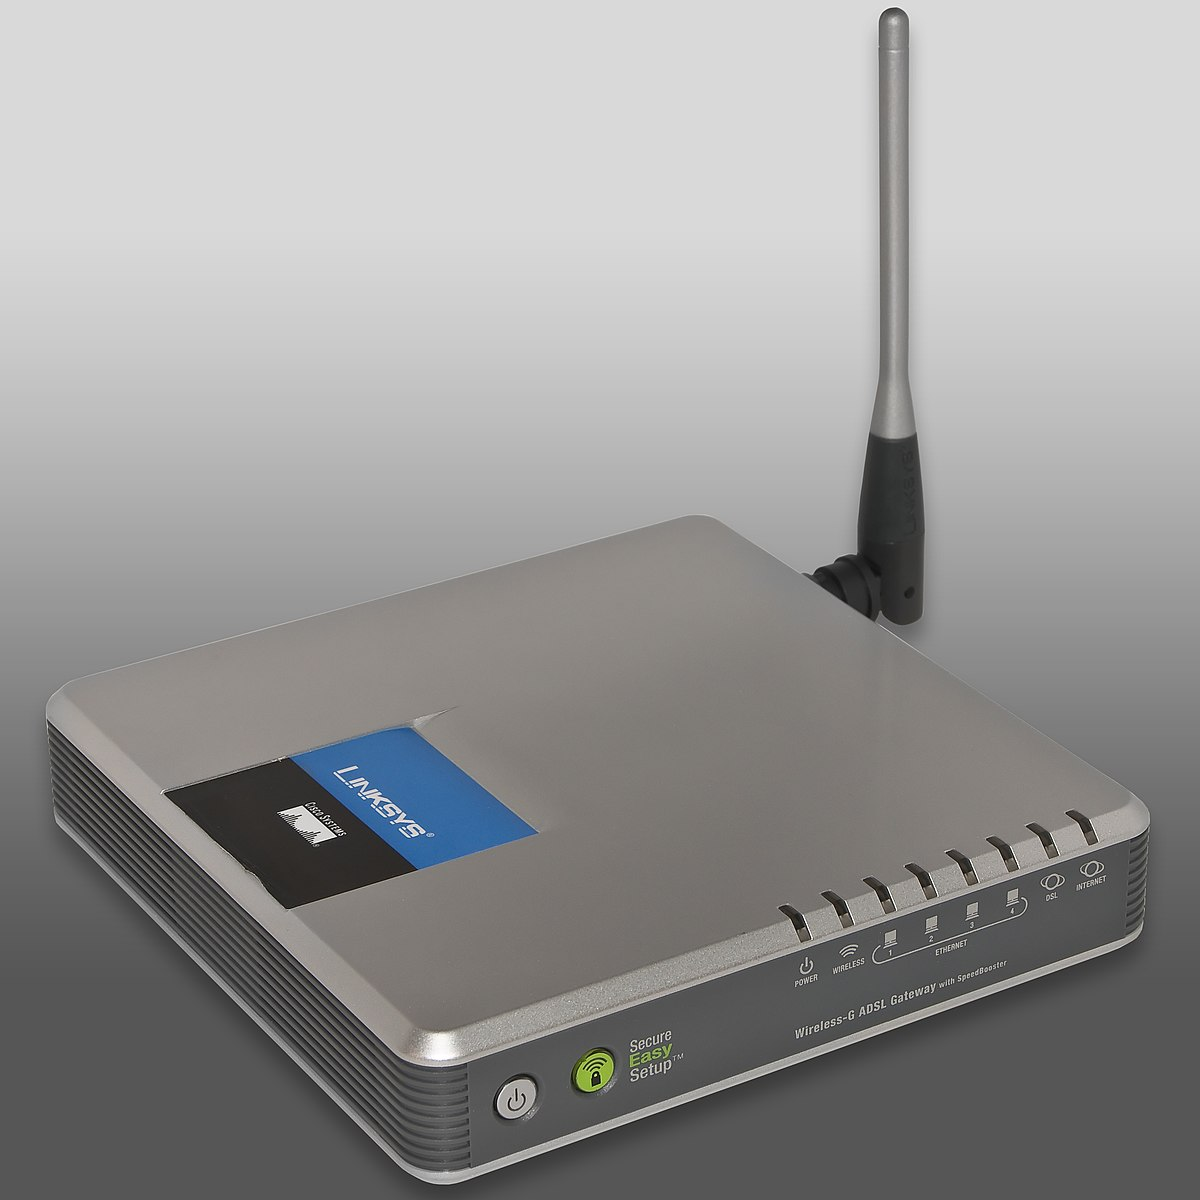 1200px-ADSL_router_with_Wi-Fi_%28802.11_b-g%29.jpg